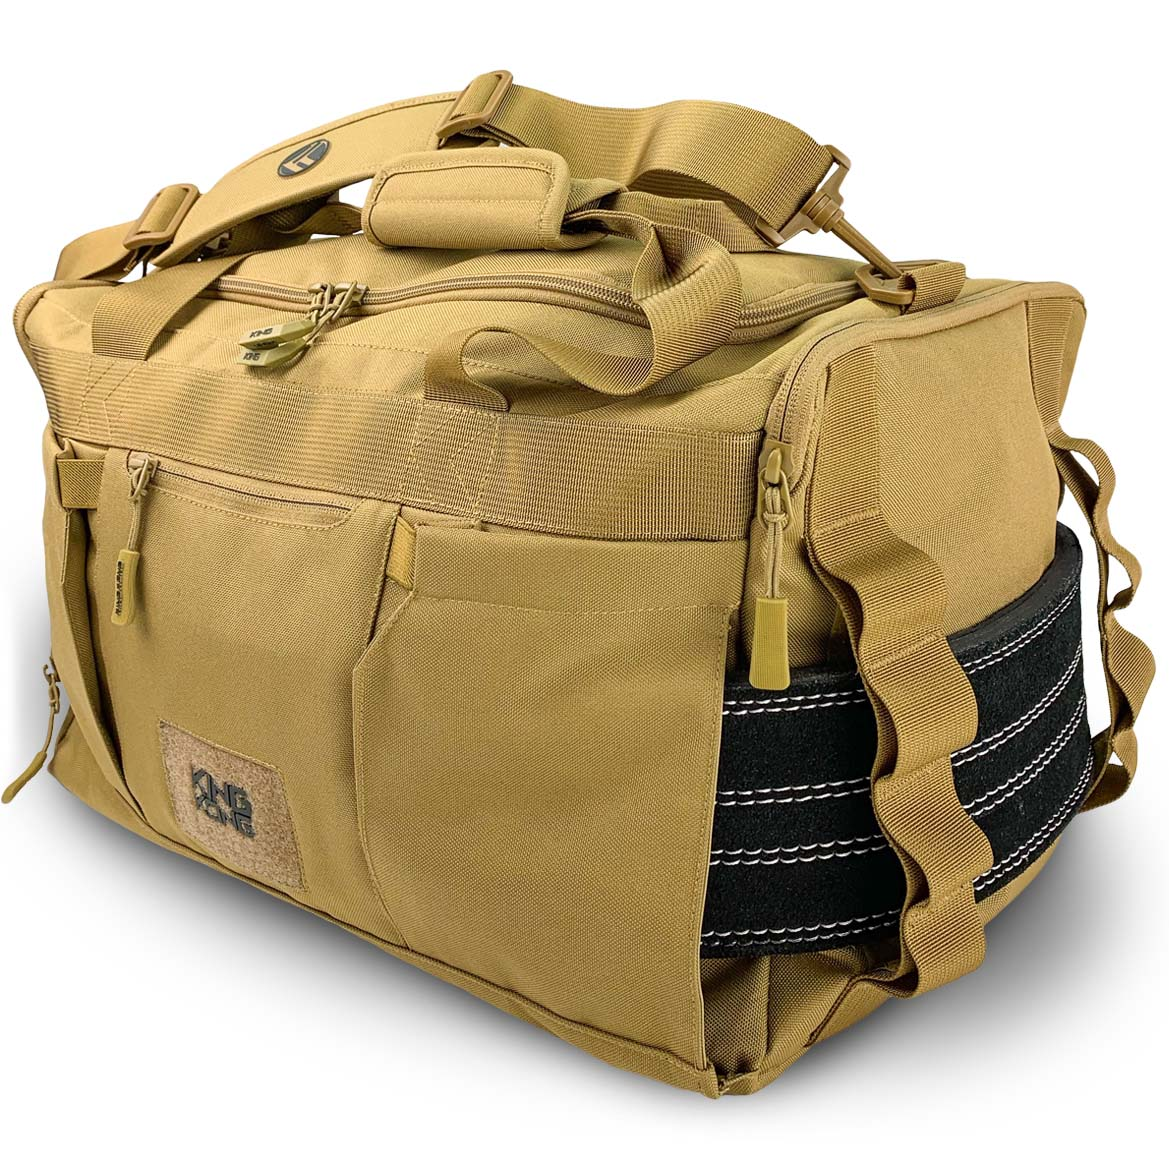 CORE35 duffel bag